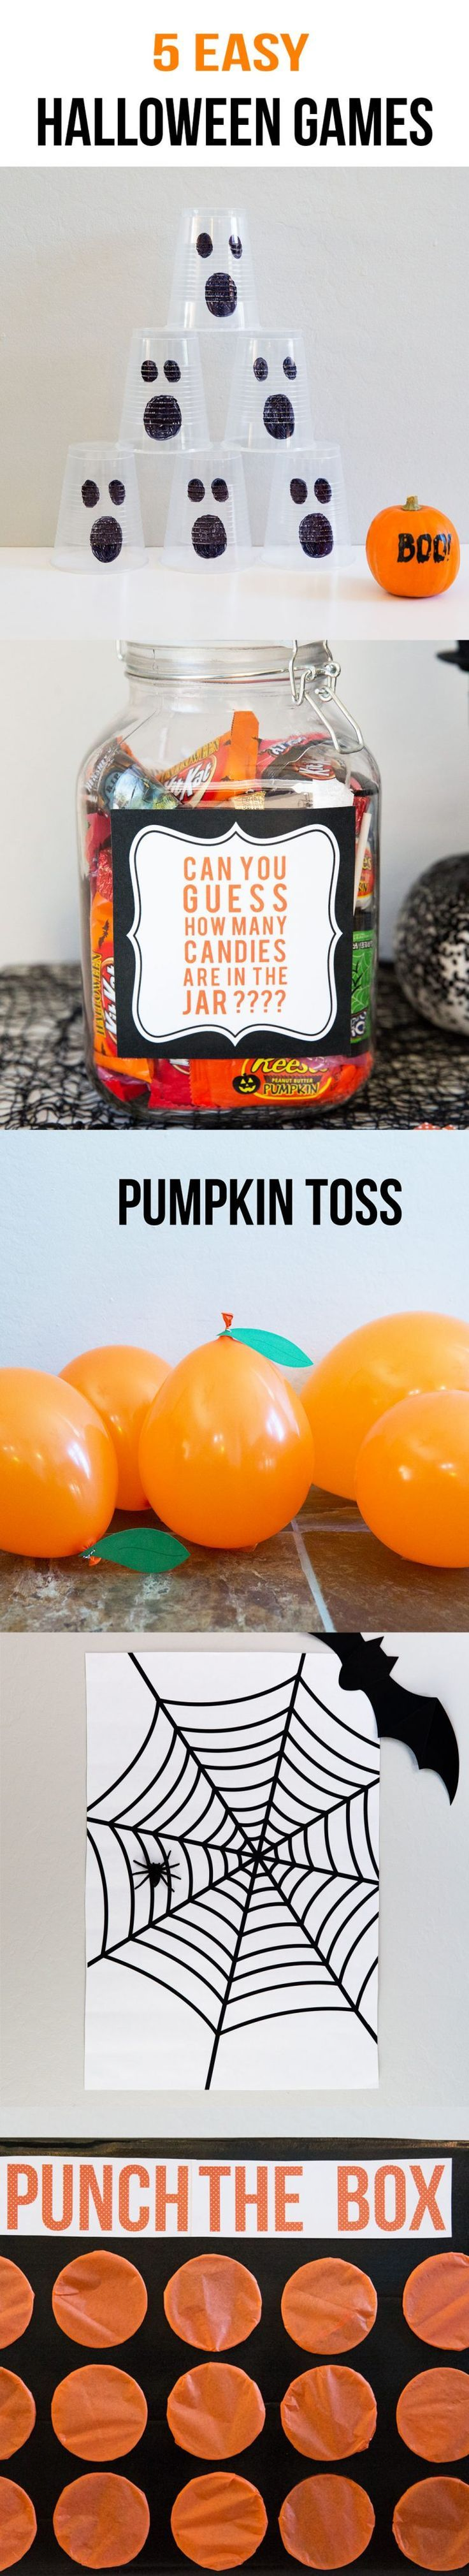 what are fun things to do at a halloween party | frameimage